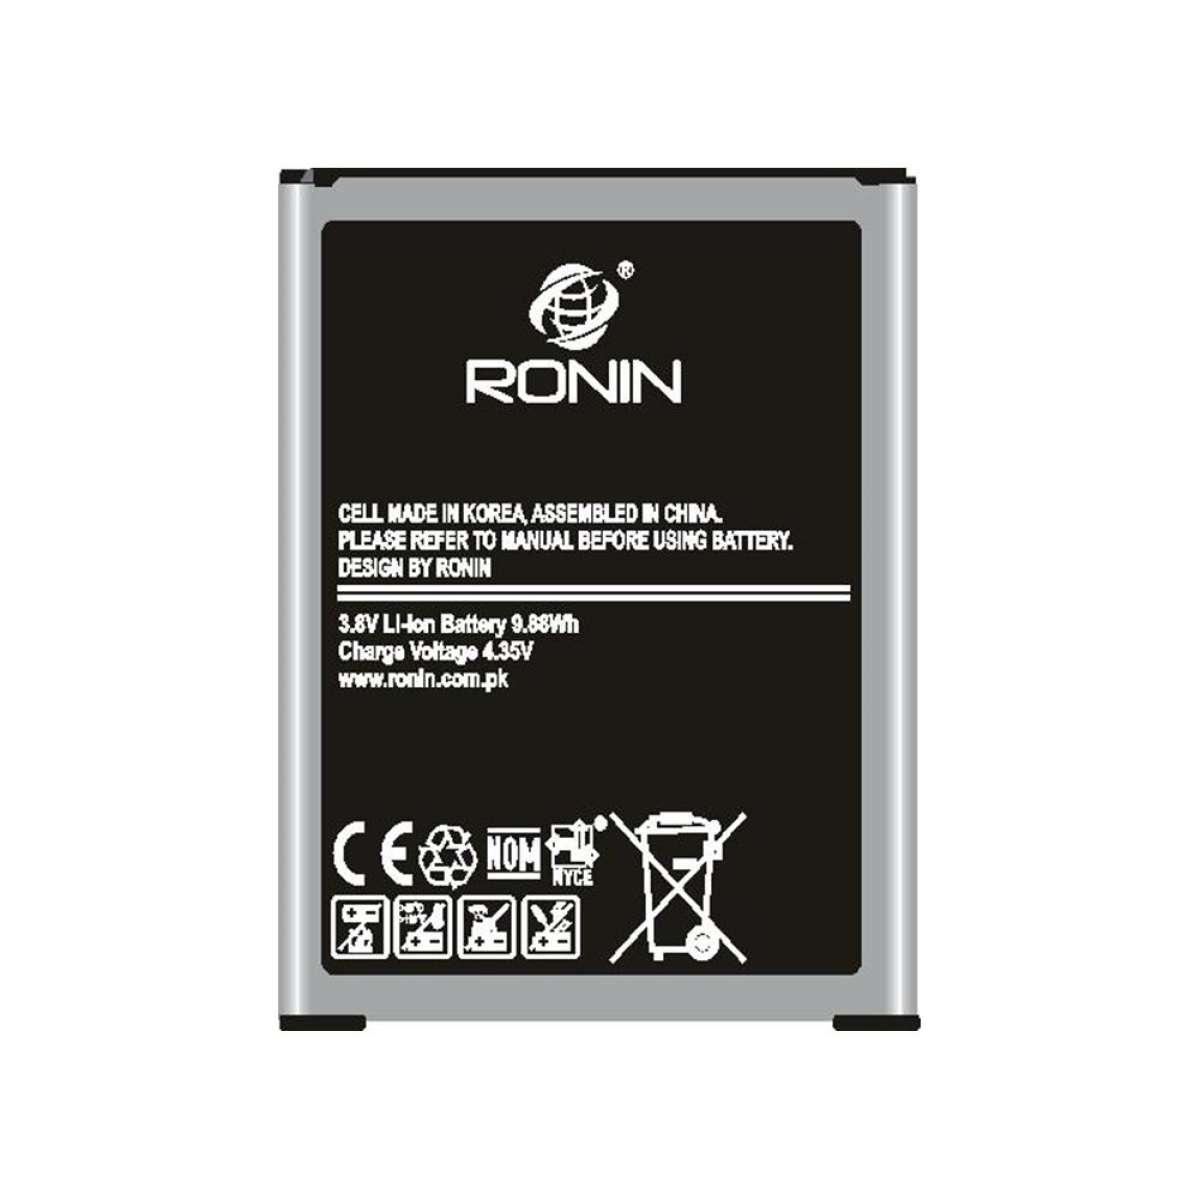 Product details of ronin Battery for G530 ,G531Grand Prime 4G & Galaxy J5 SM -J500F - 2600mAh Black